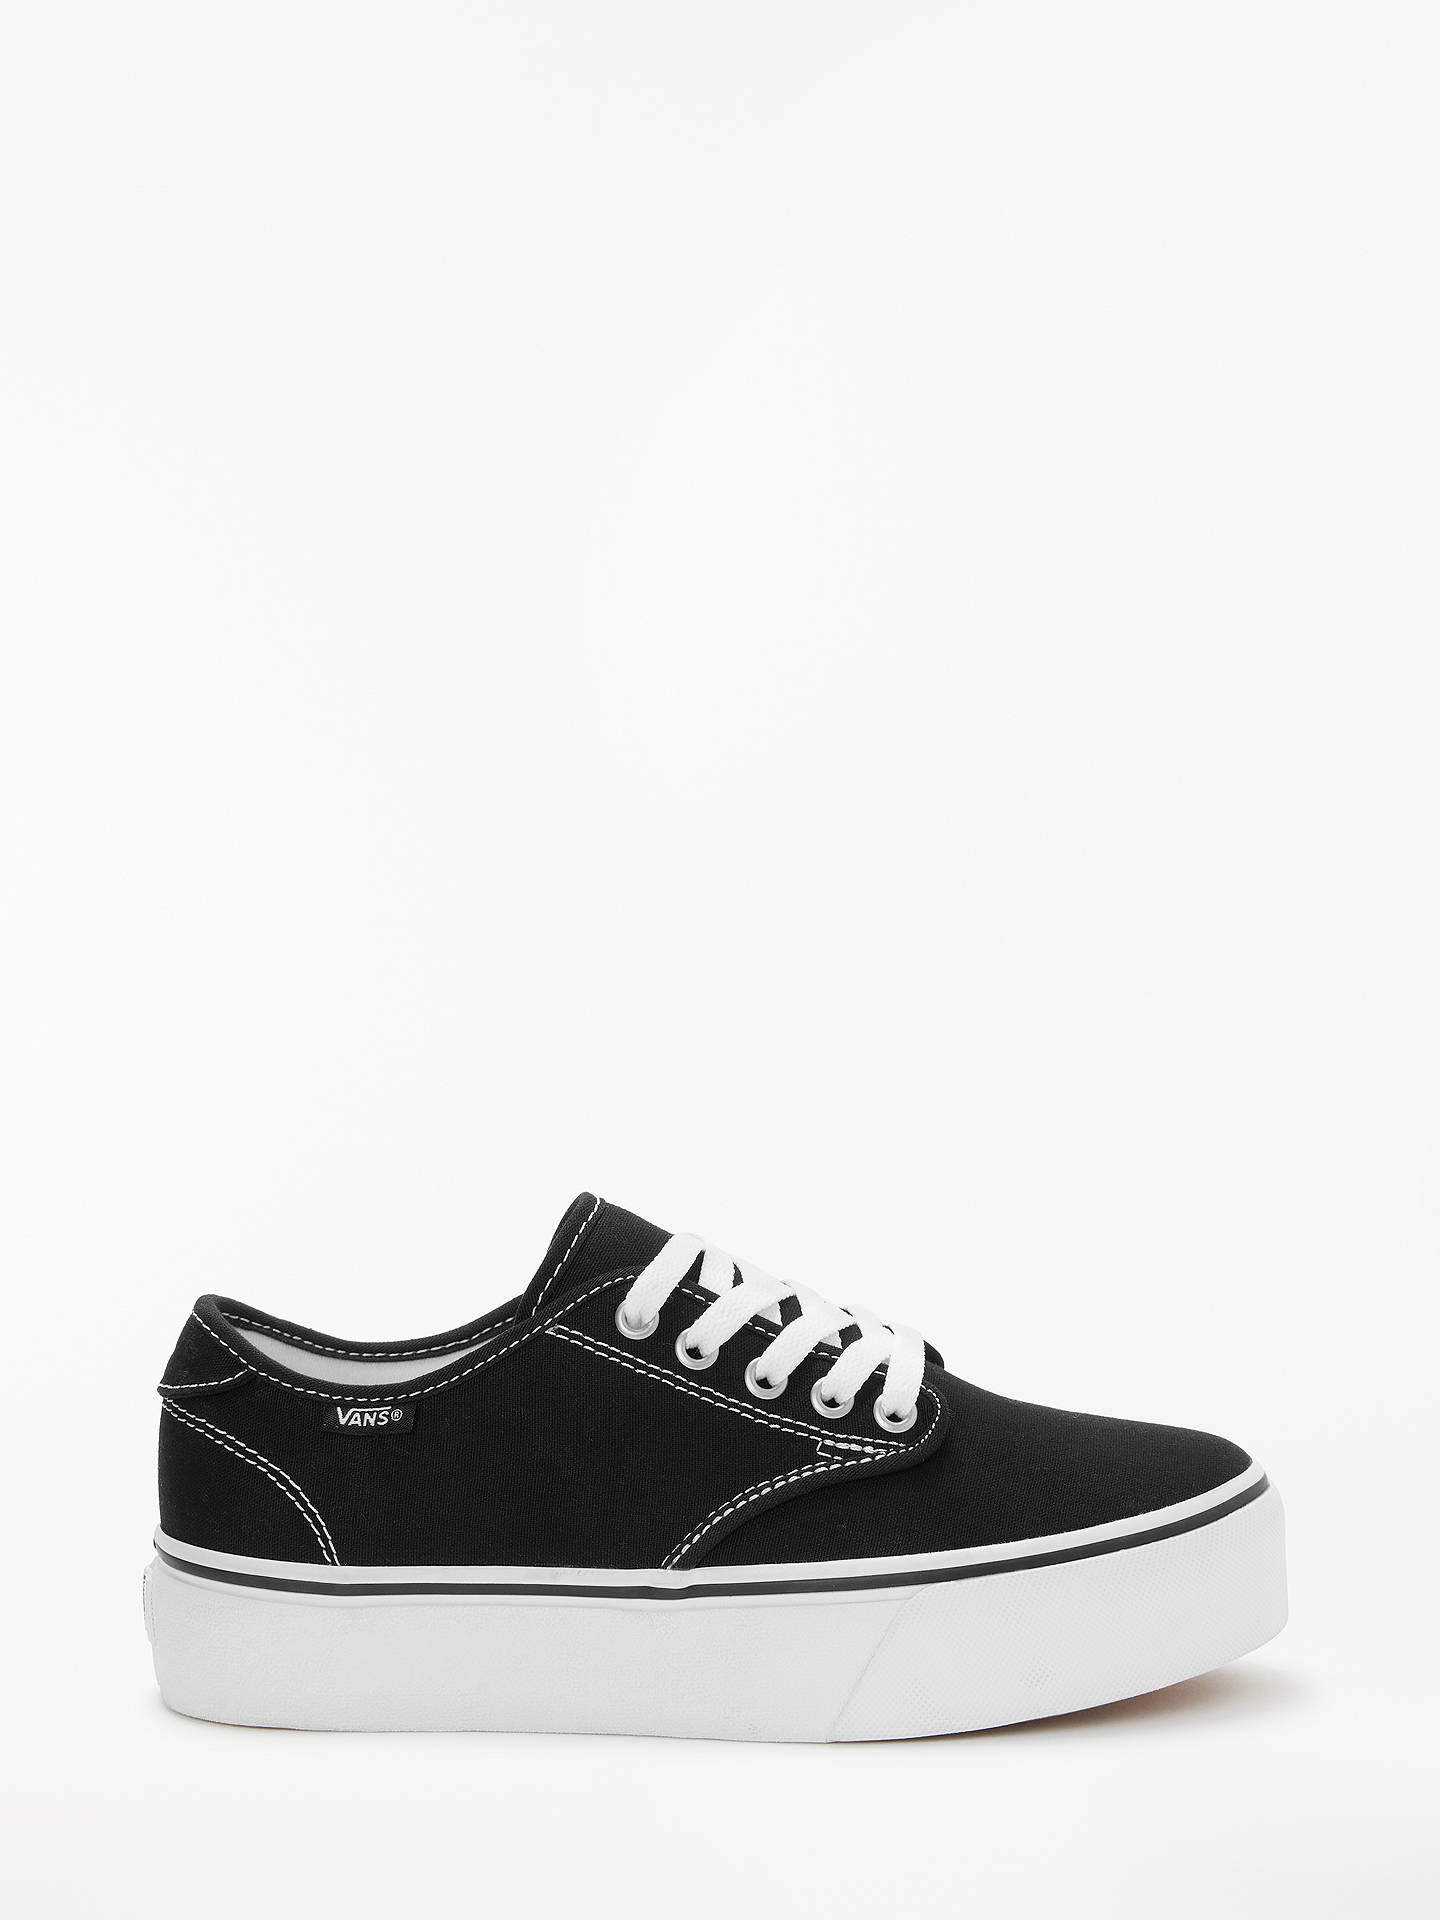 27725ab68 Buy Vans Camden Platform Canvas Trainers, Black, 5 Online at johnlewis.com  ...